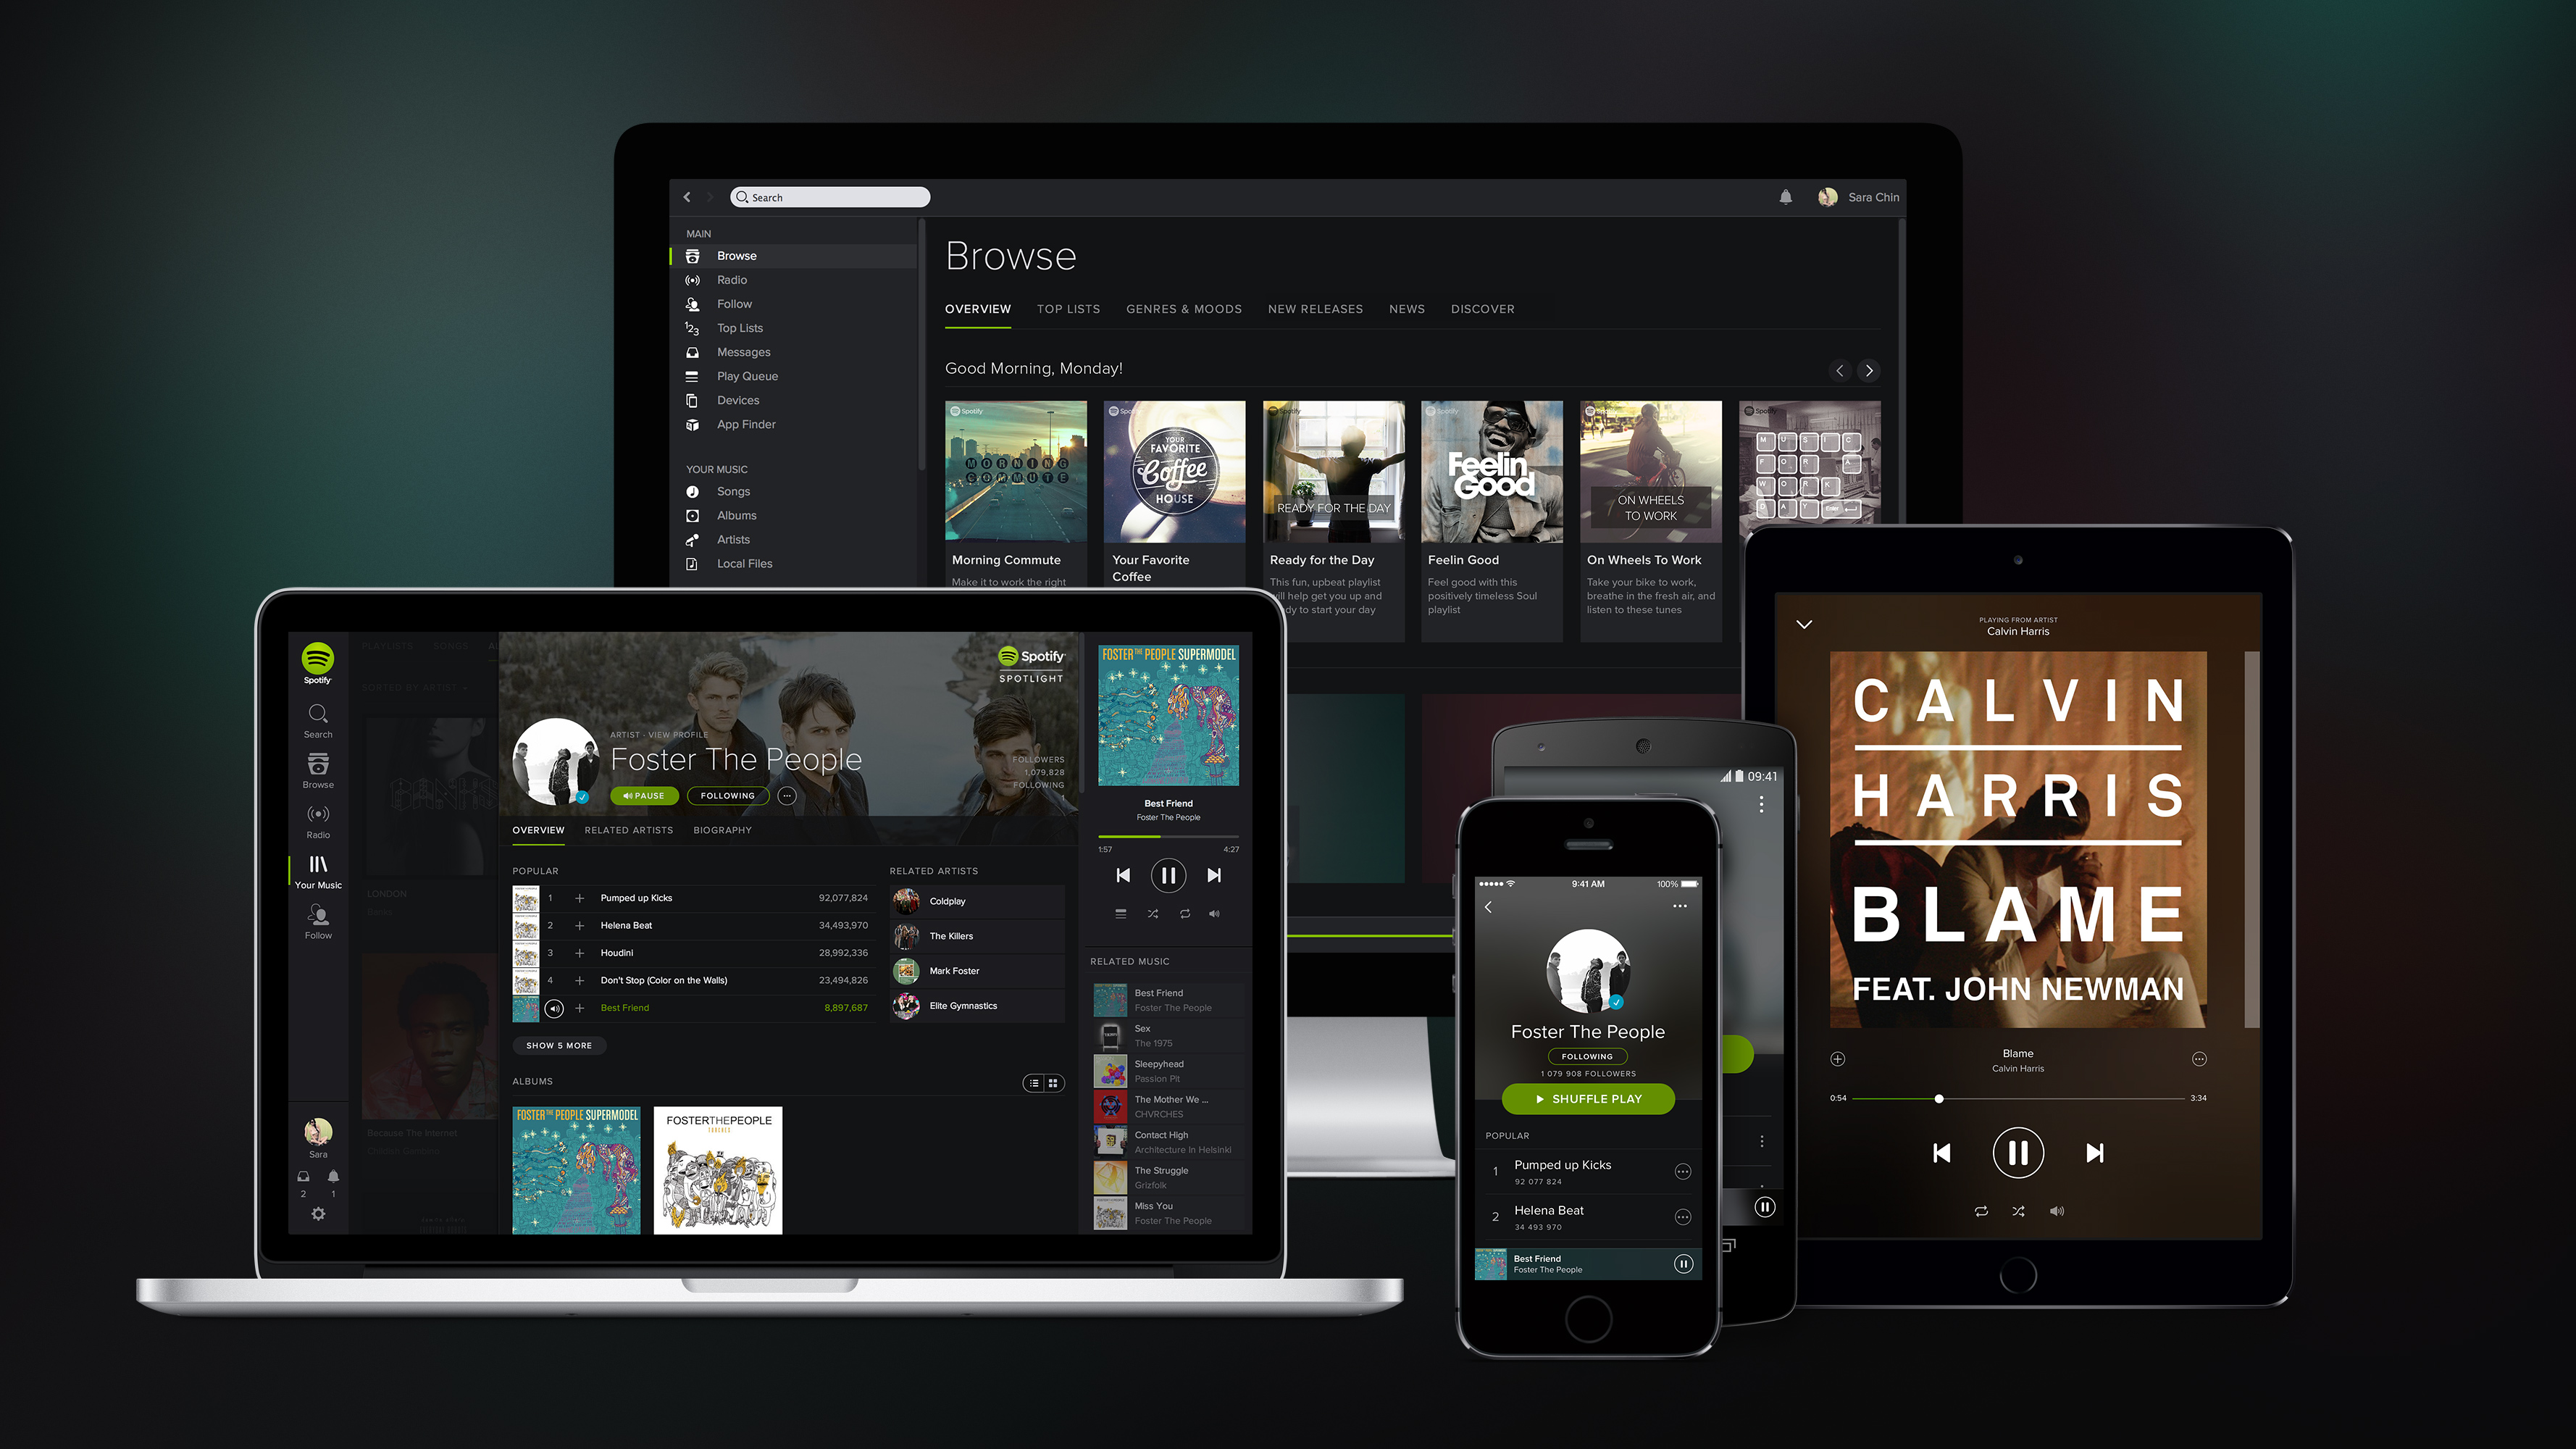 Spotify wants you to stop paying through the App Store